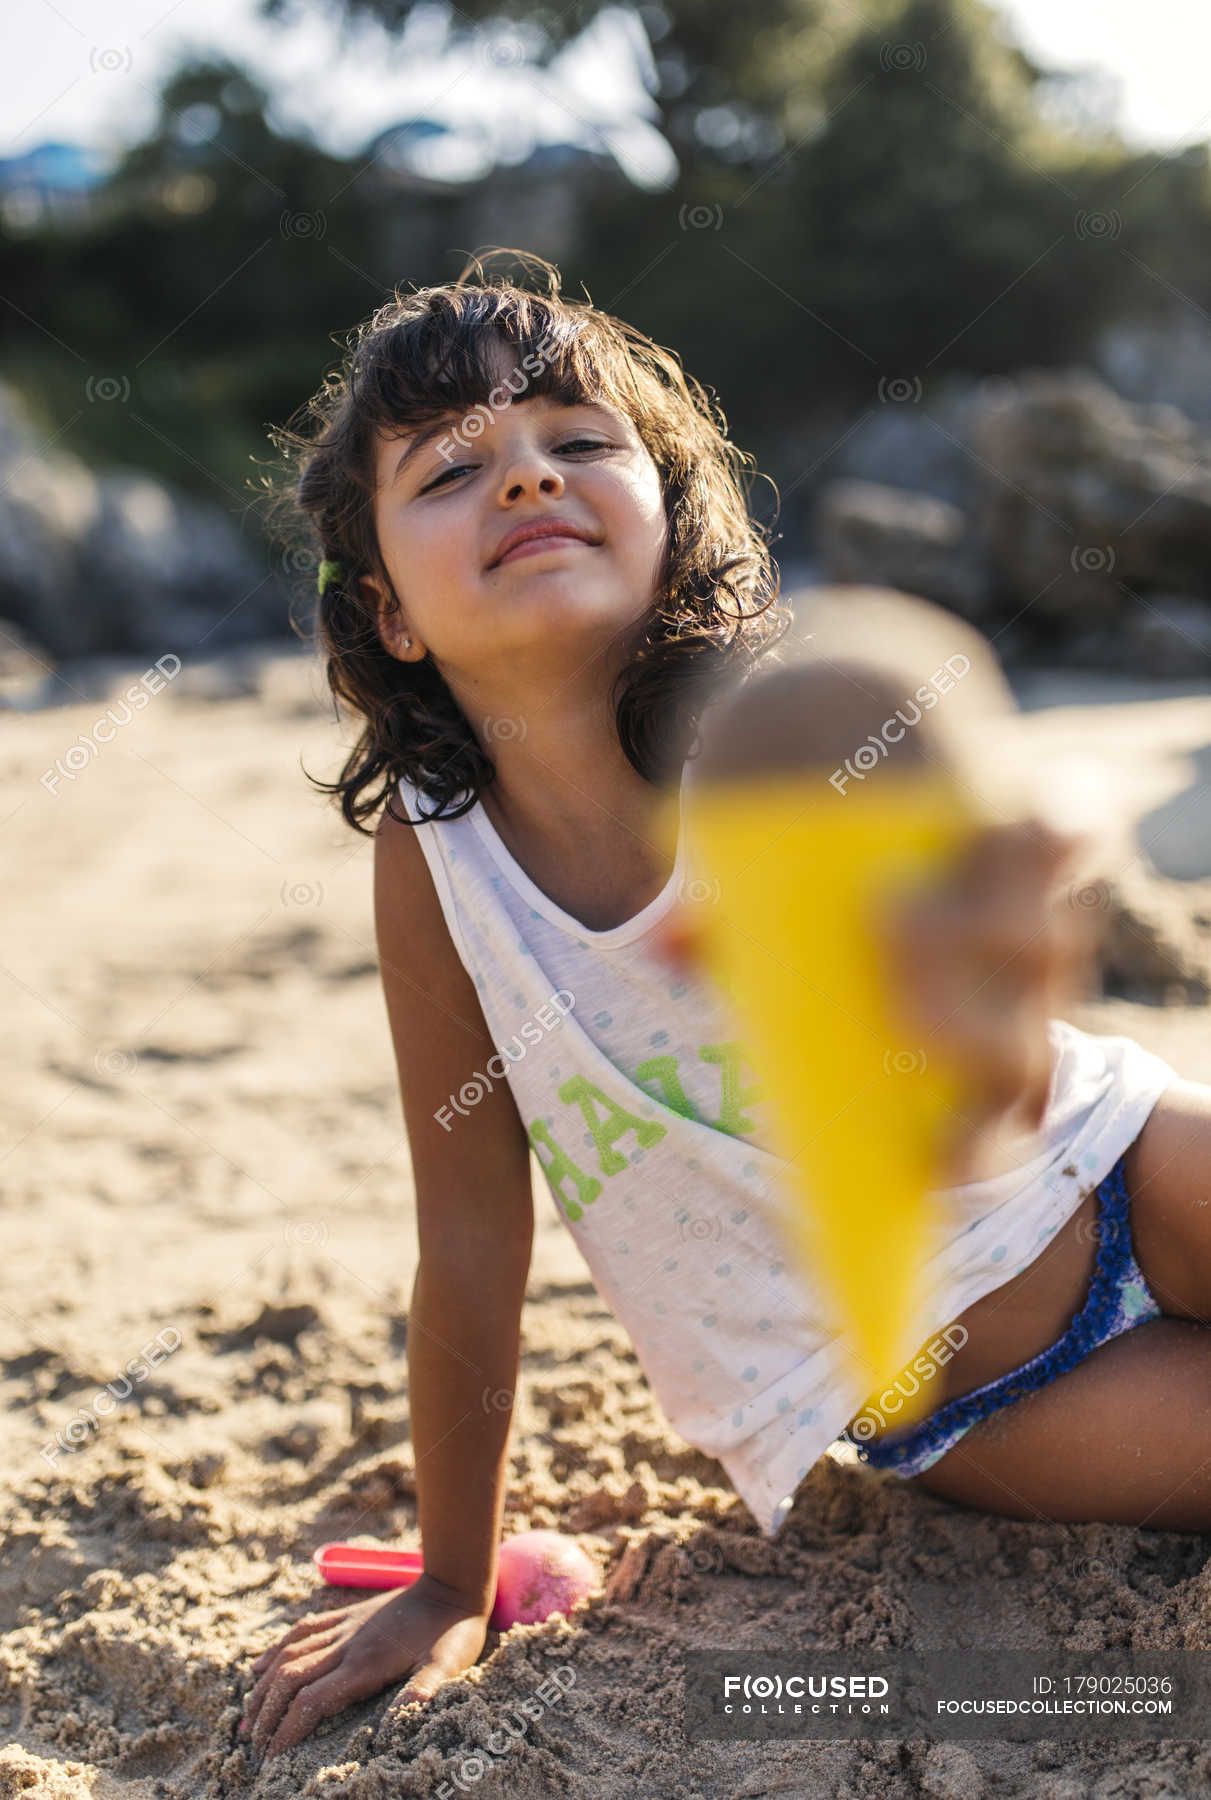 Young Girl Having Fun Building Sand Castle On Beach Stock